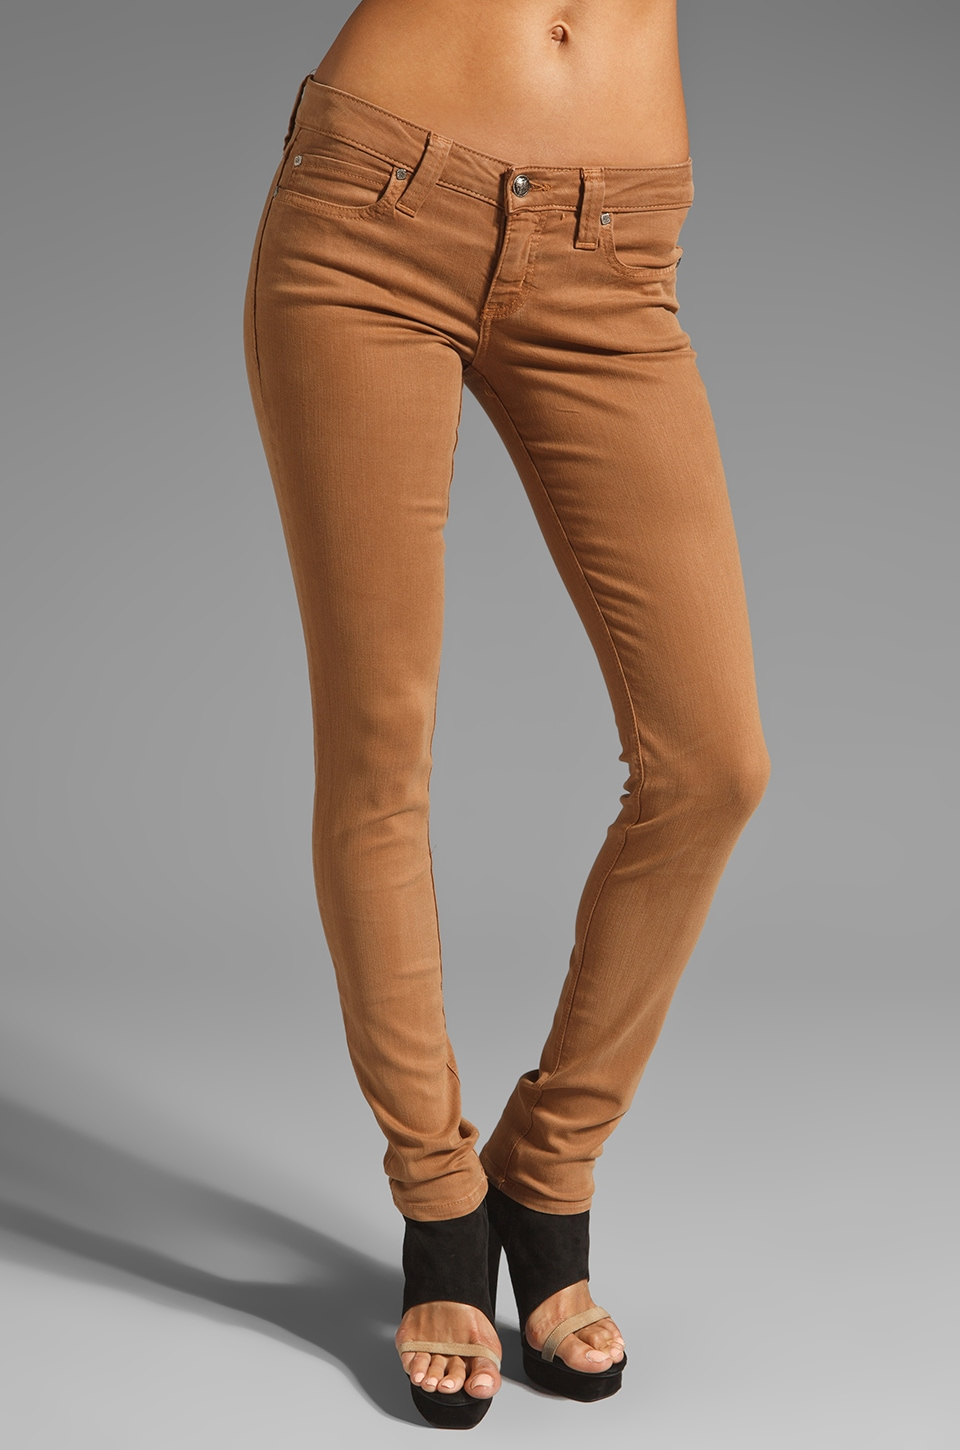 Frankie B. Jeans Jilted Lover Jegging in Camel